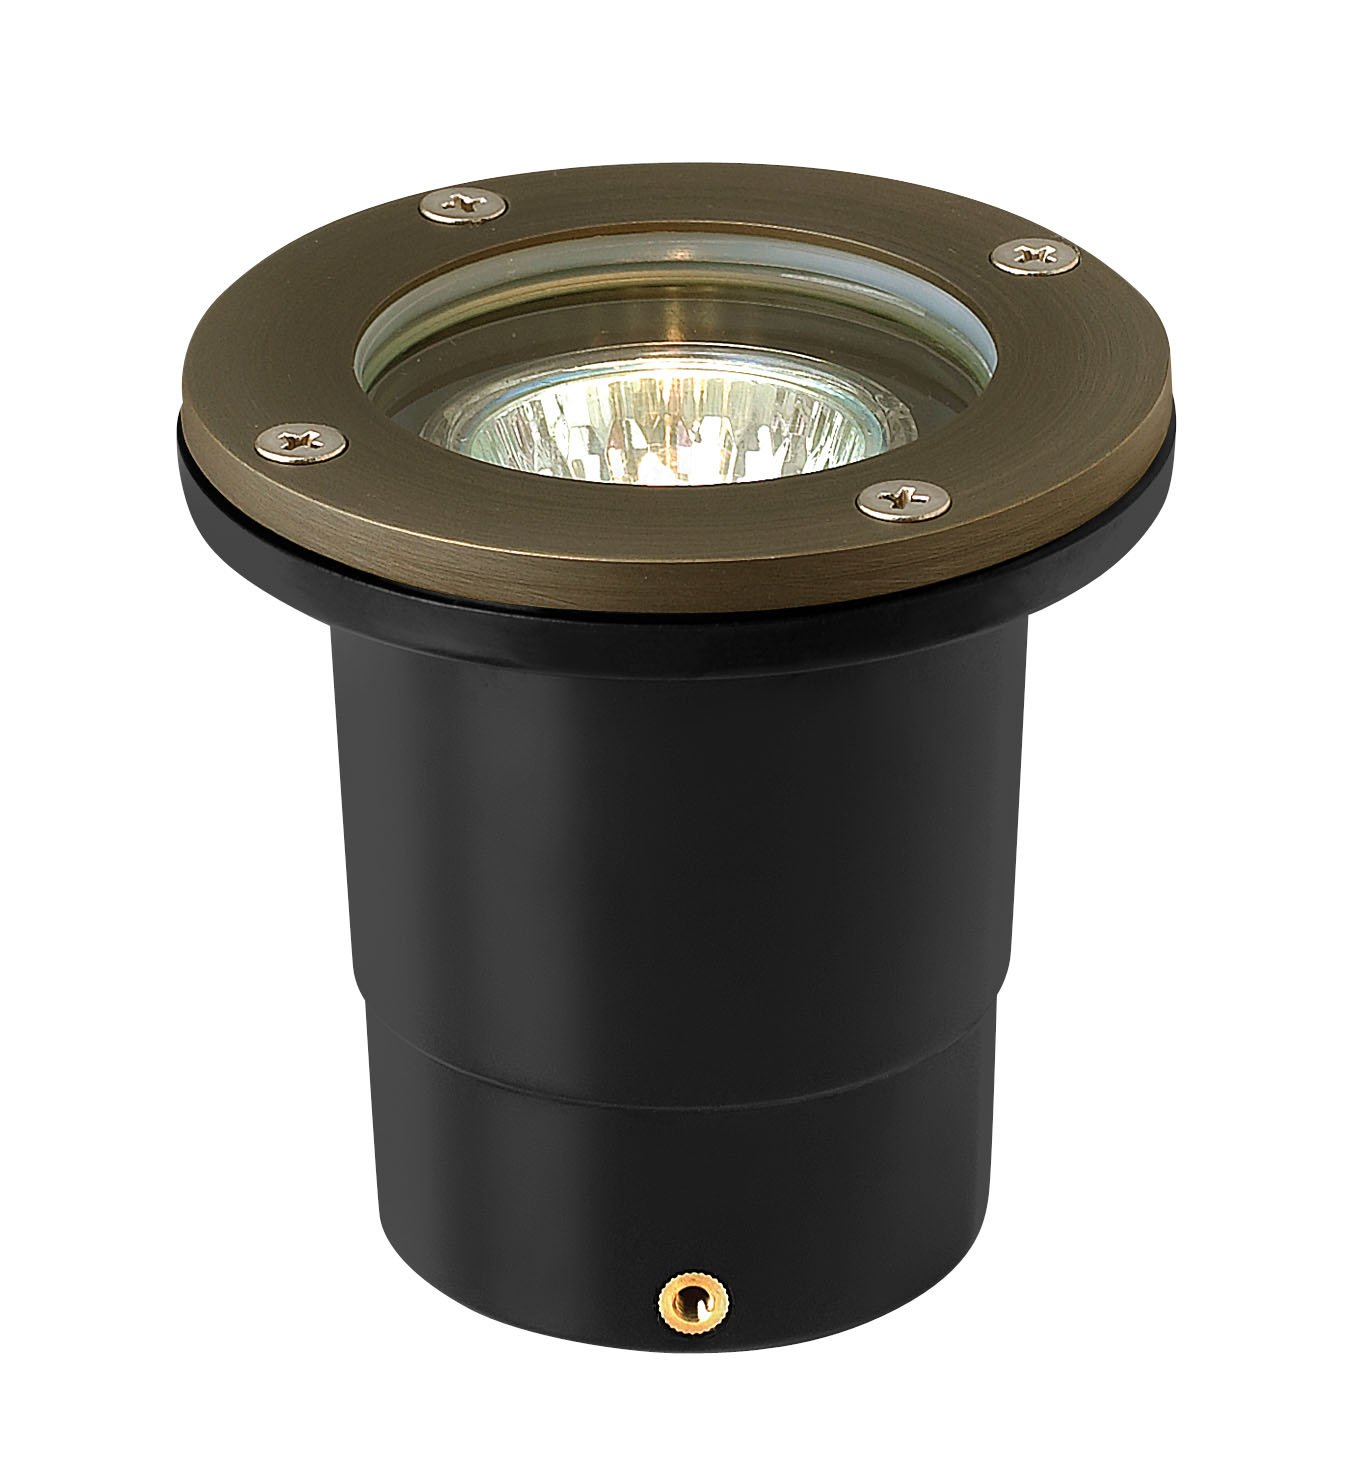 Hinkley Lighting Flat Top Well Light - Flat Top In-Ground Light That Highlights Important Landscape Features and Increases Home Security, Matte Bronze Finish, Hardy Island Collection, 16701MZ